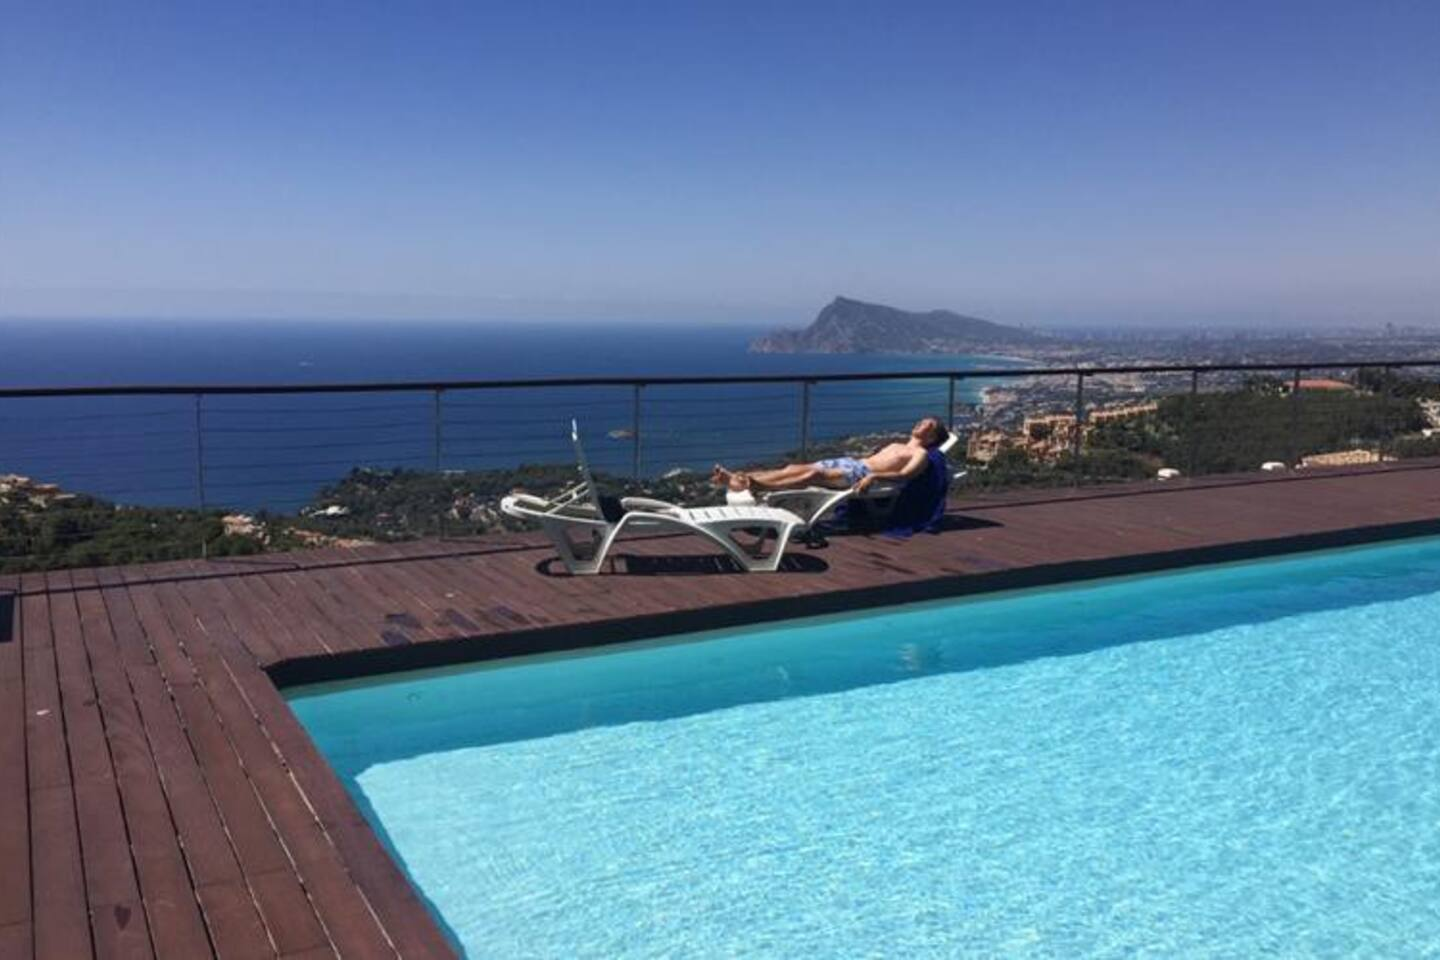 Pool area with stunning views over Altea